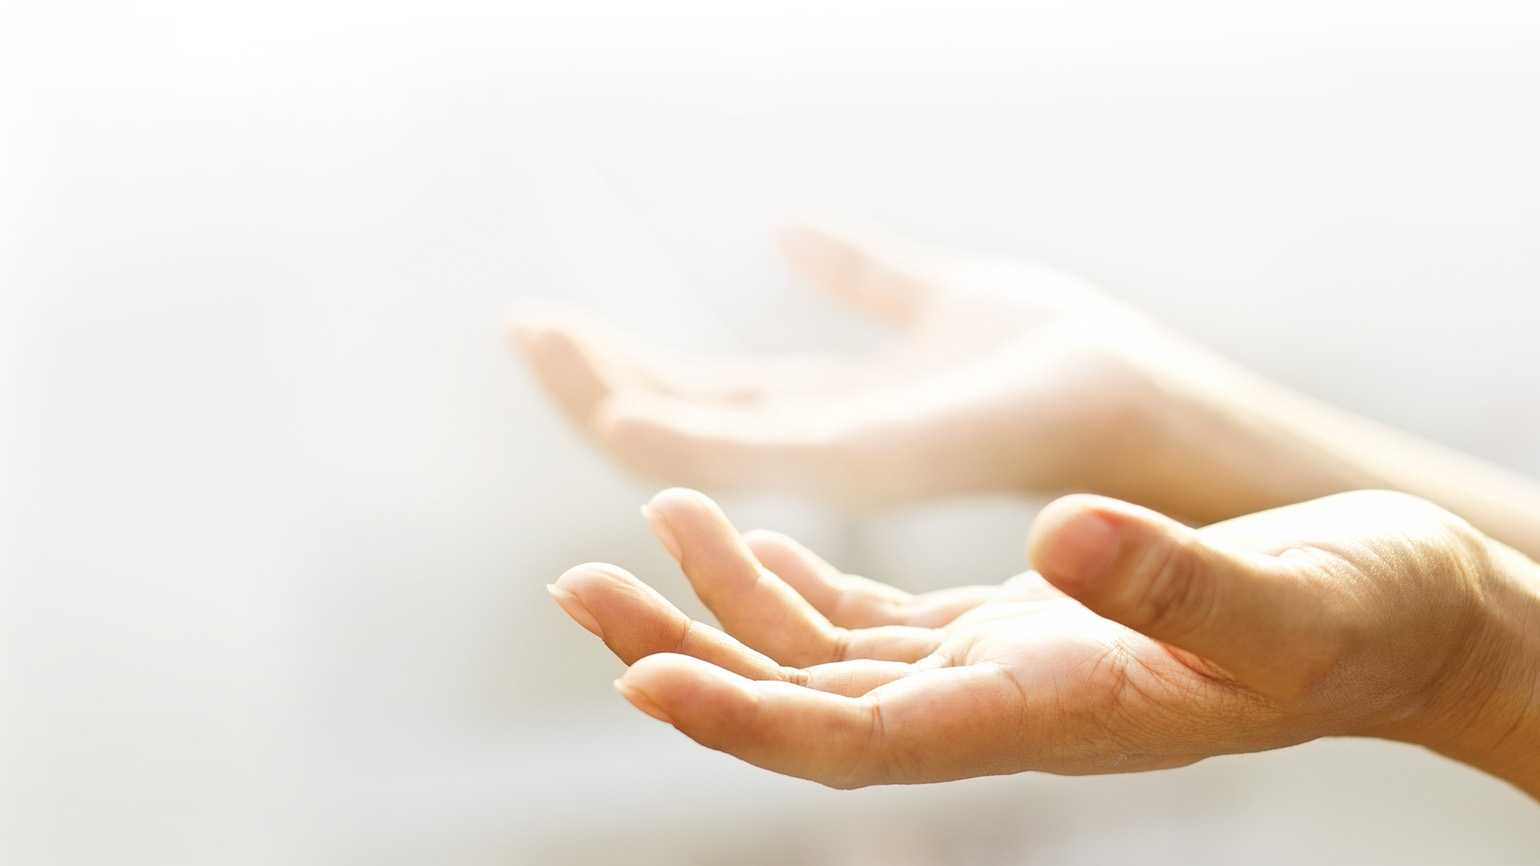 Hands illuminated by light and open in prayer.